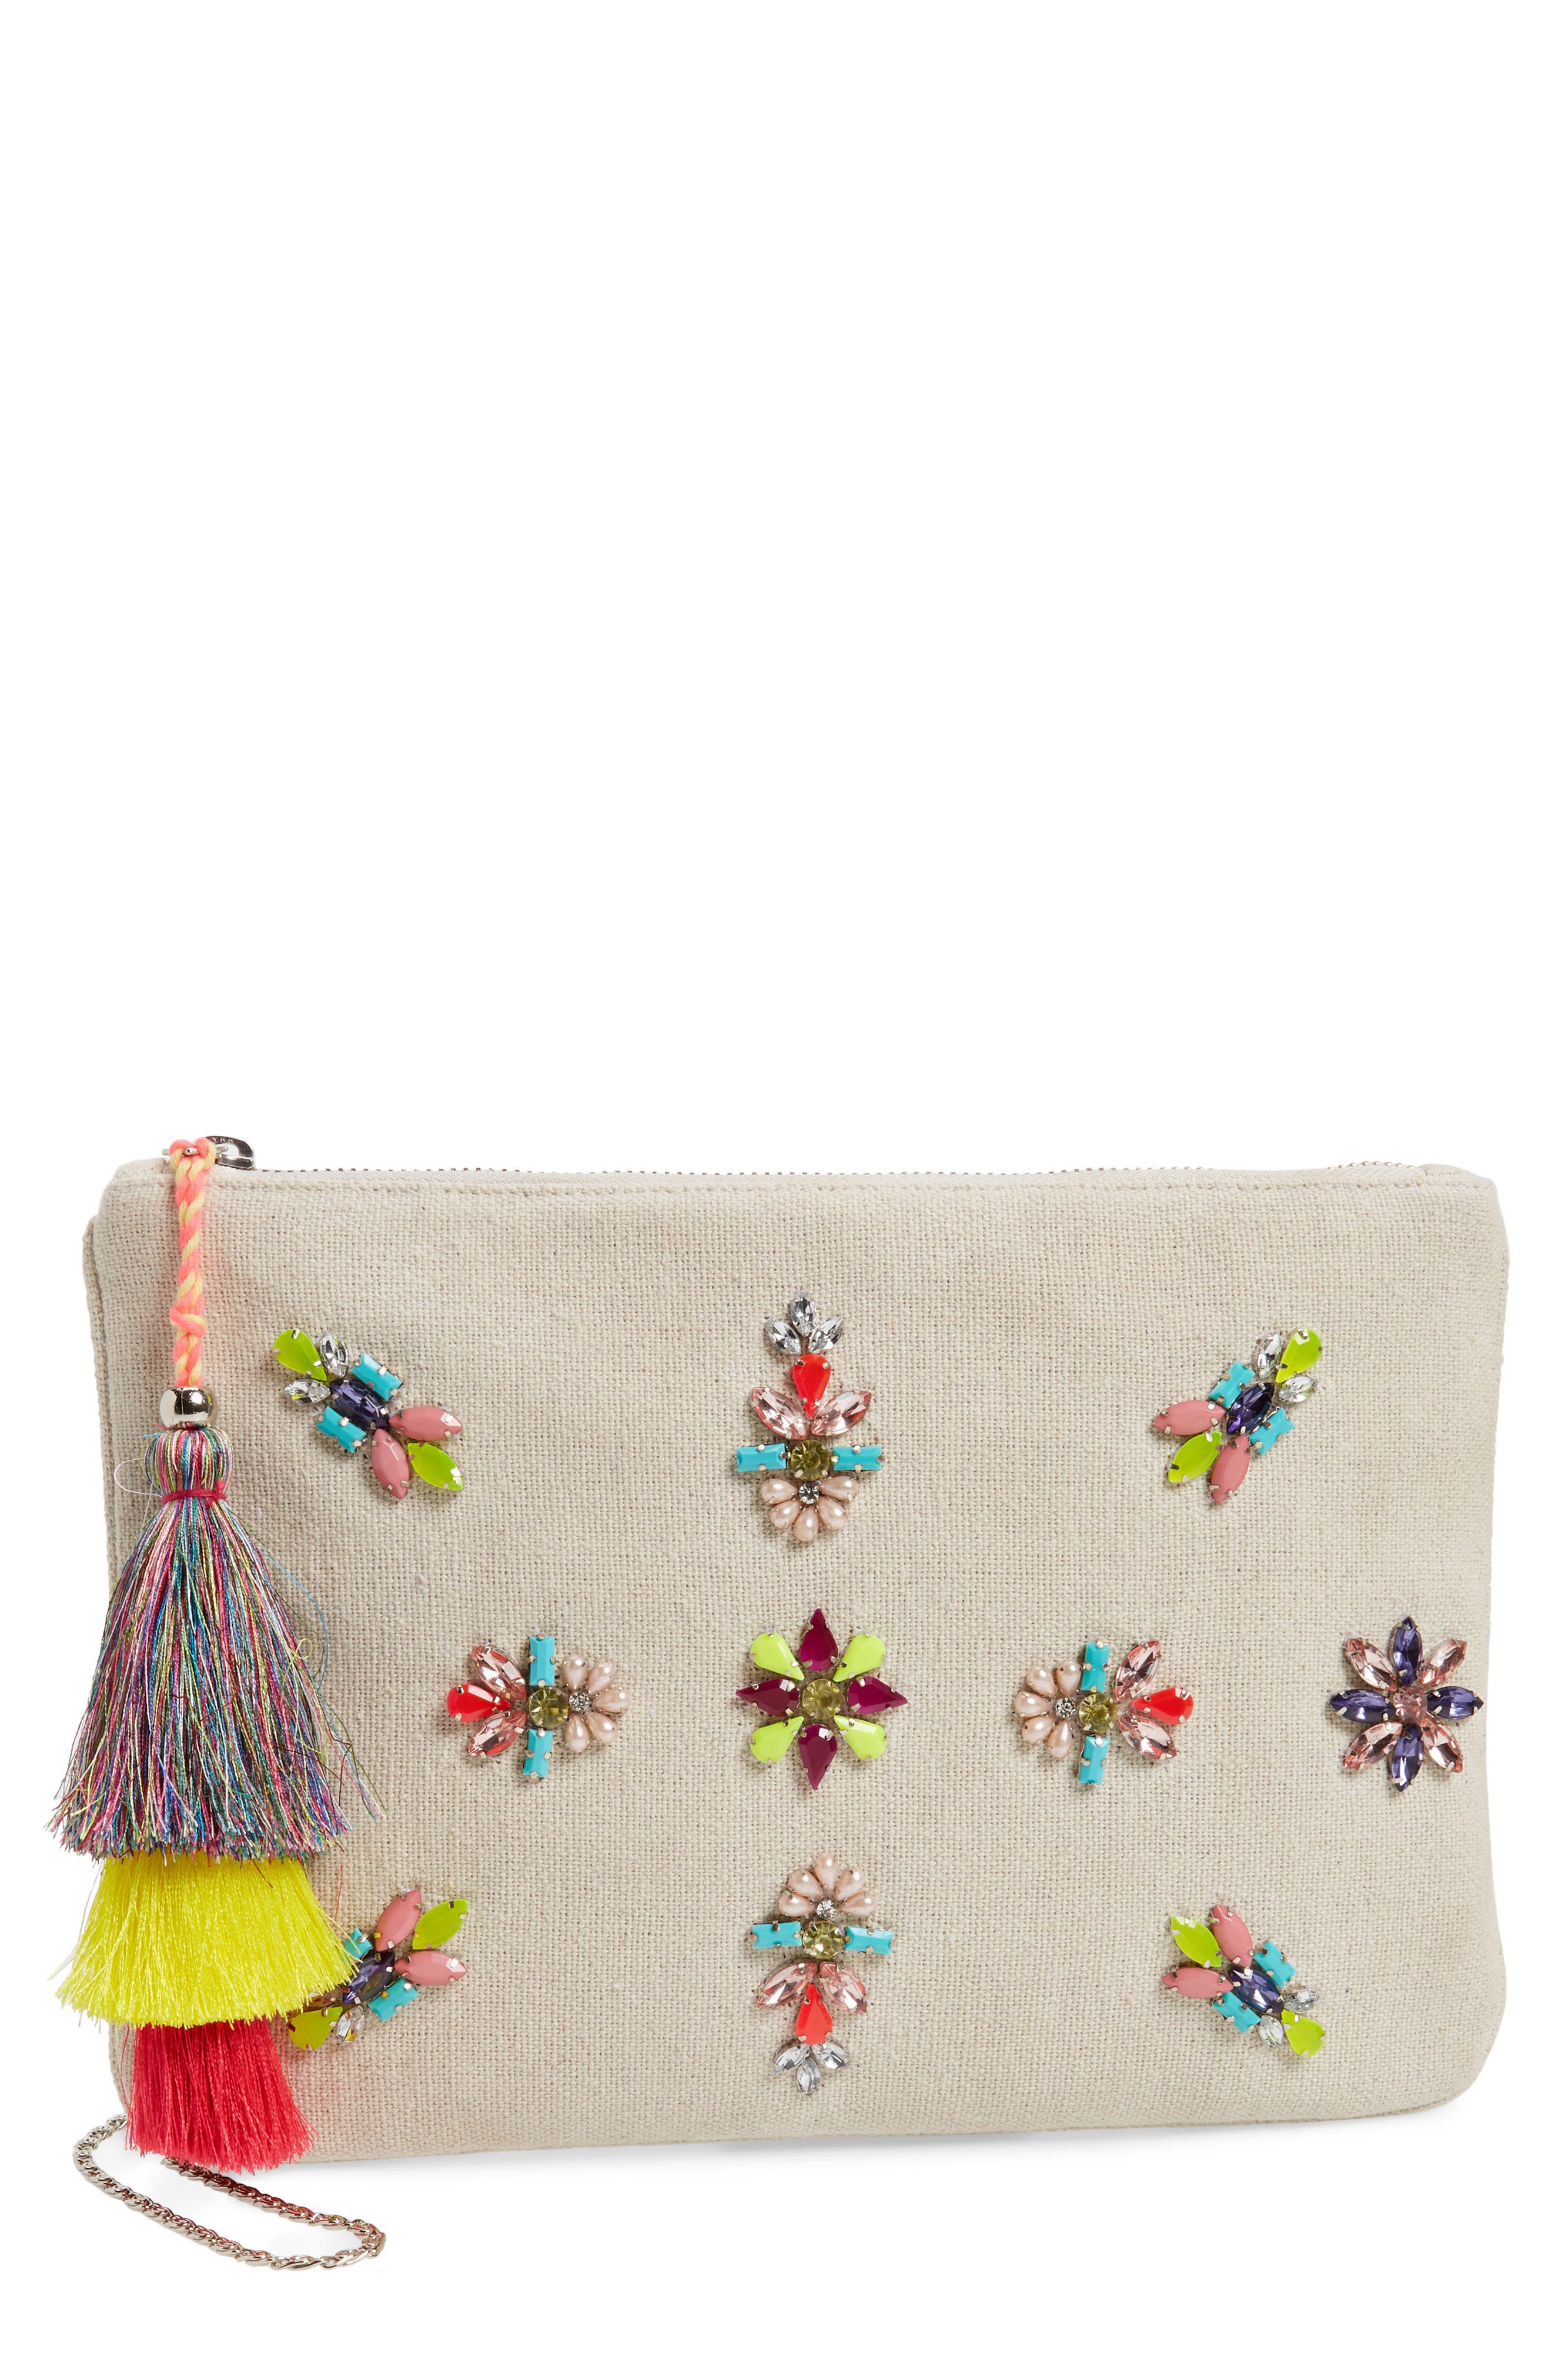 Rhinestone Appliqué Crossbody Clutch,                             Main thumbnail 1, color,                             250